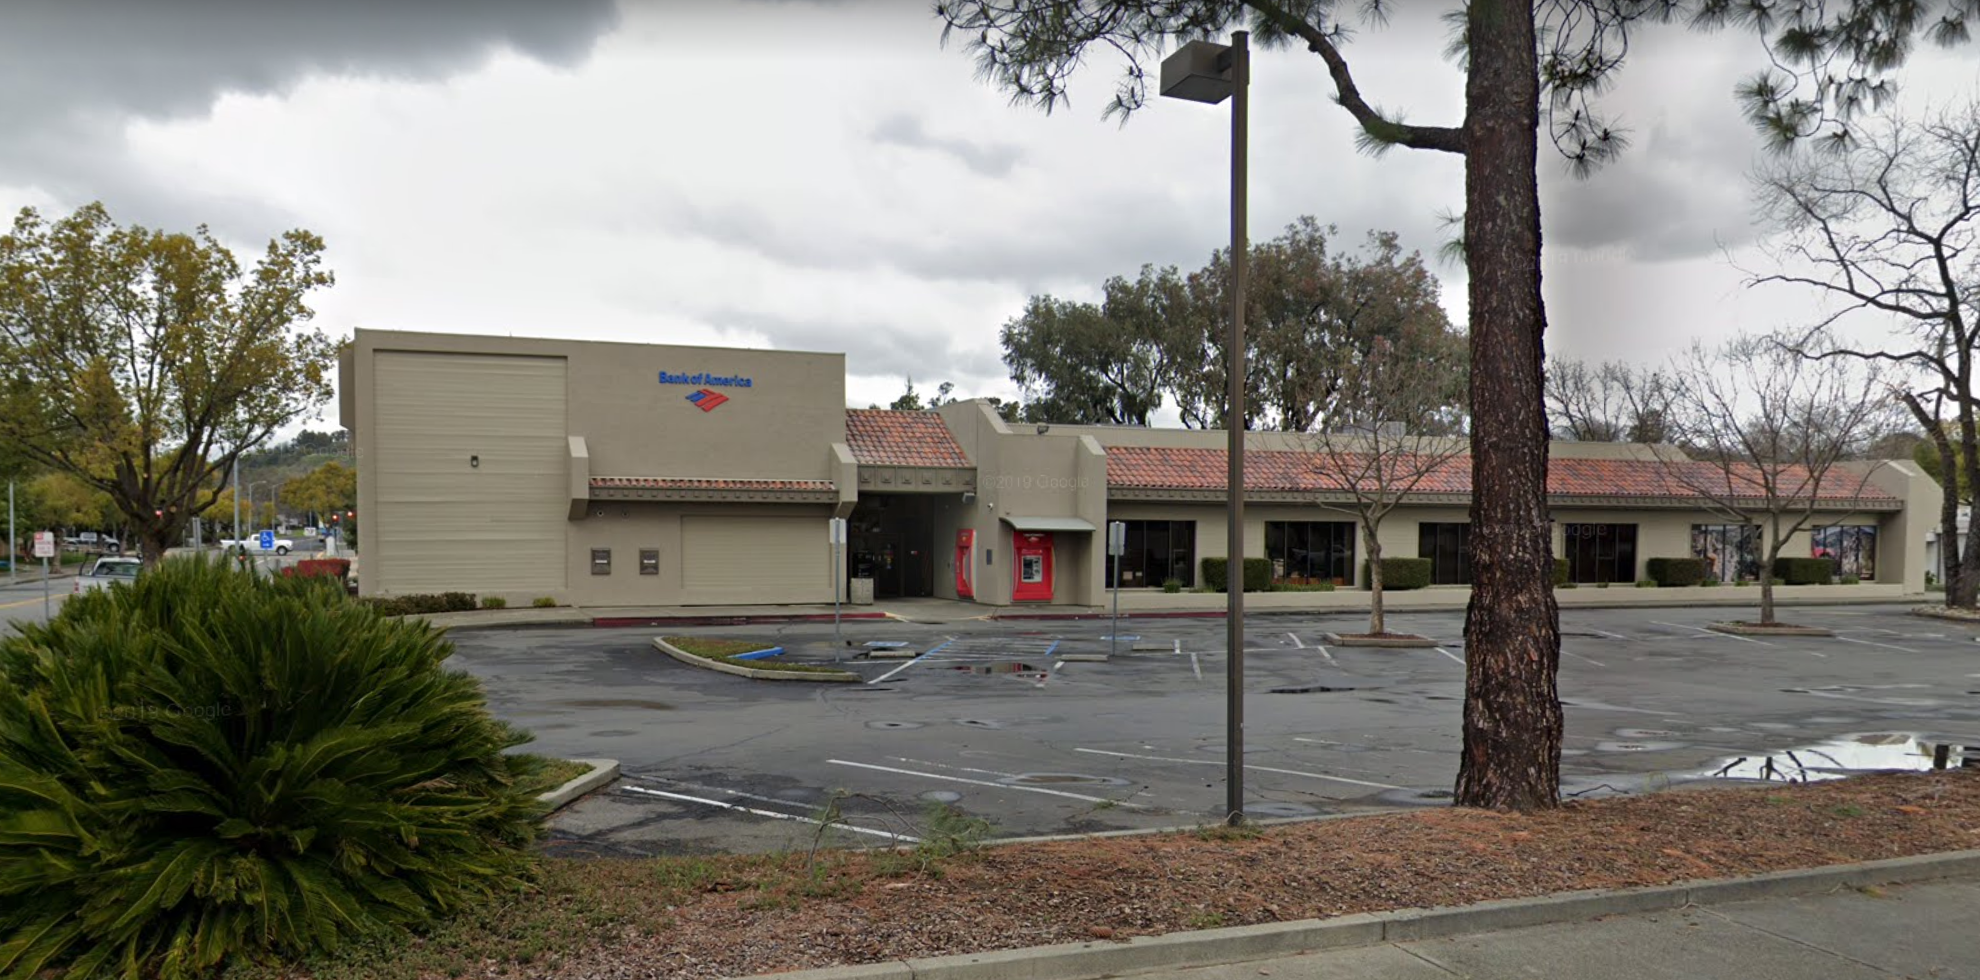 Bank of America financial center with walk-up ATM | 150 Parker St, Vacaville, CA 95688